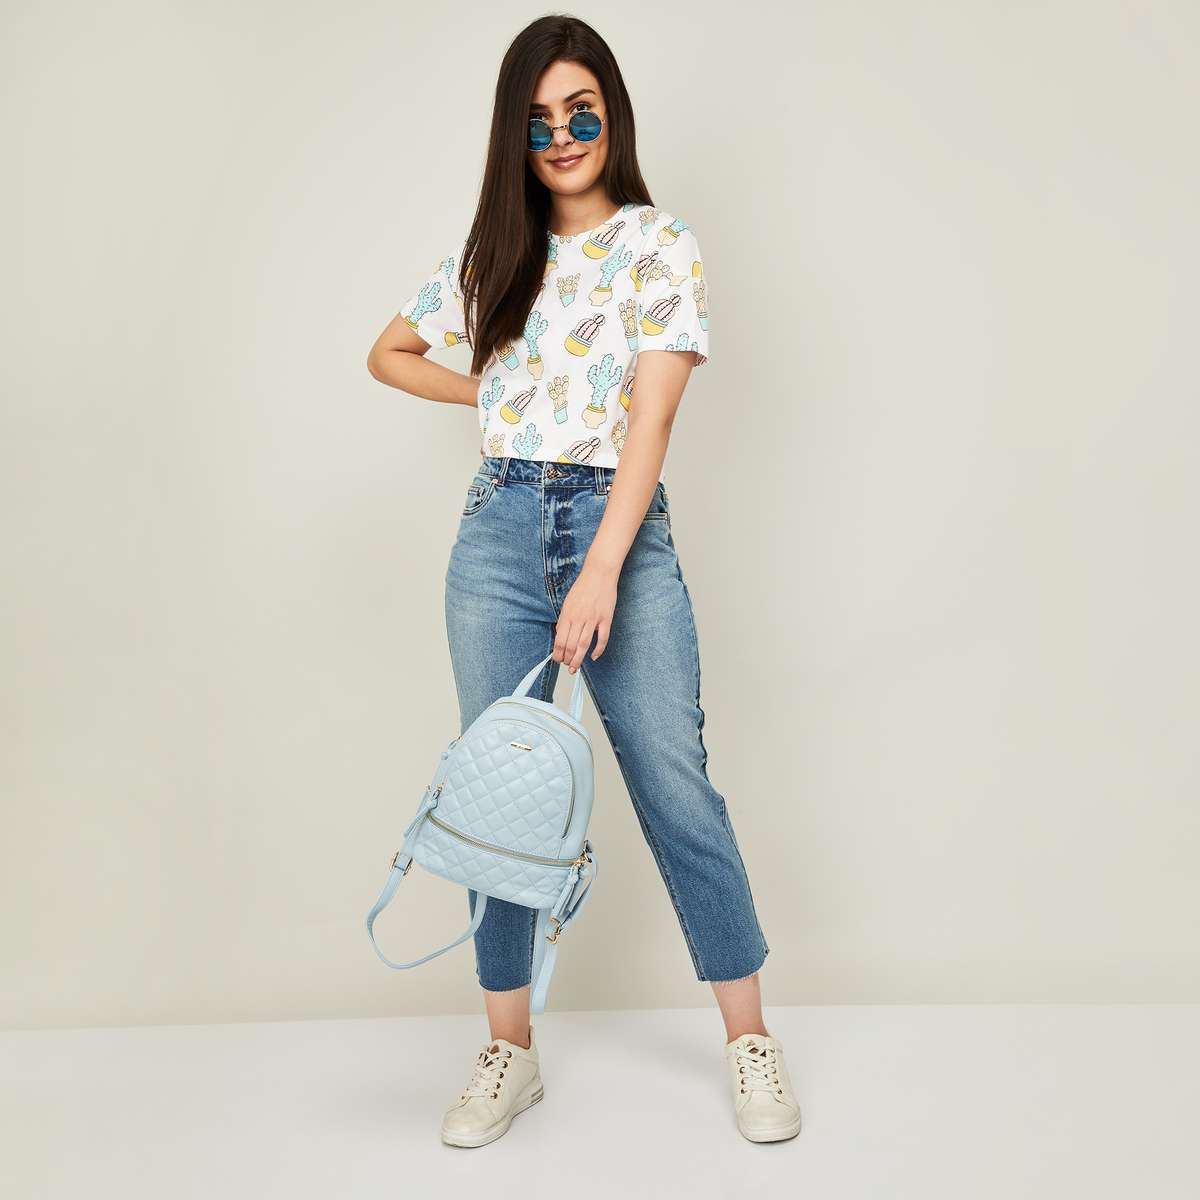 3.ONLY Women Stonewashed Straight Fit Cropped Jeans